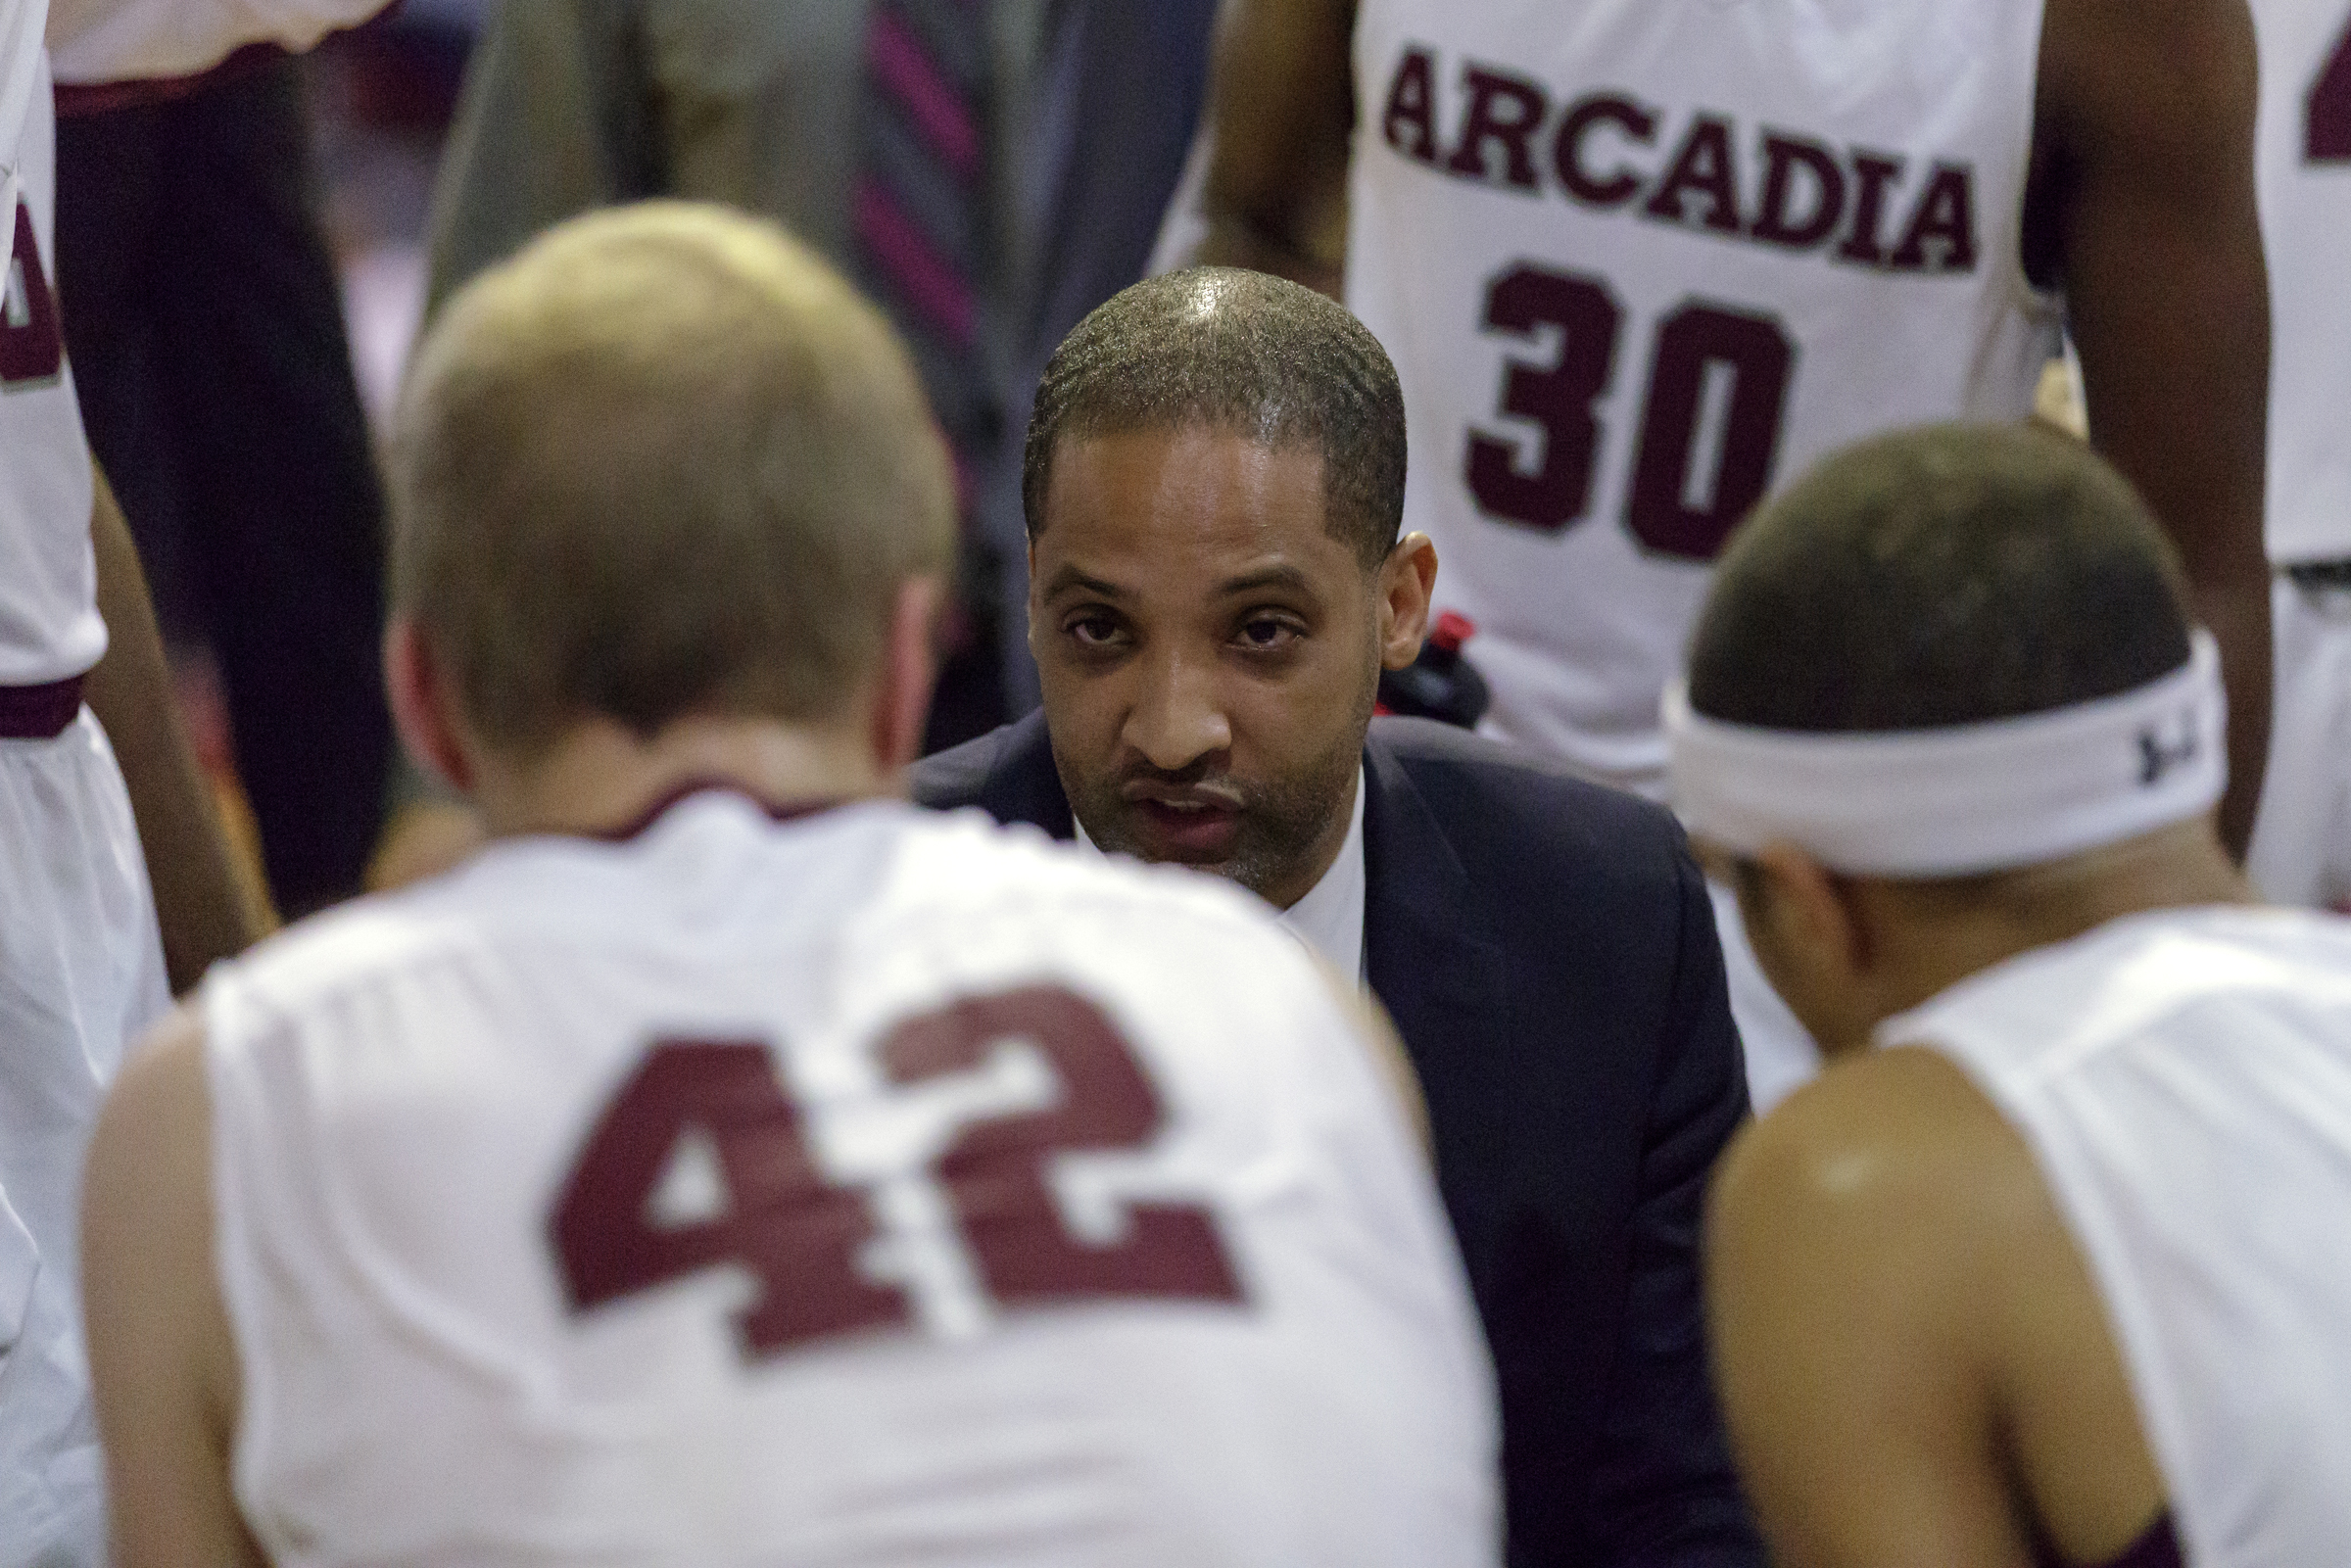 Justin Scott has been head coach at Arcadia since 2012-13.